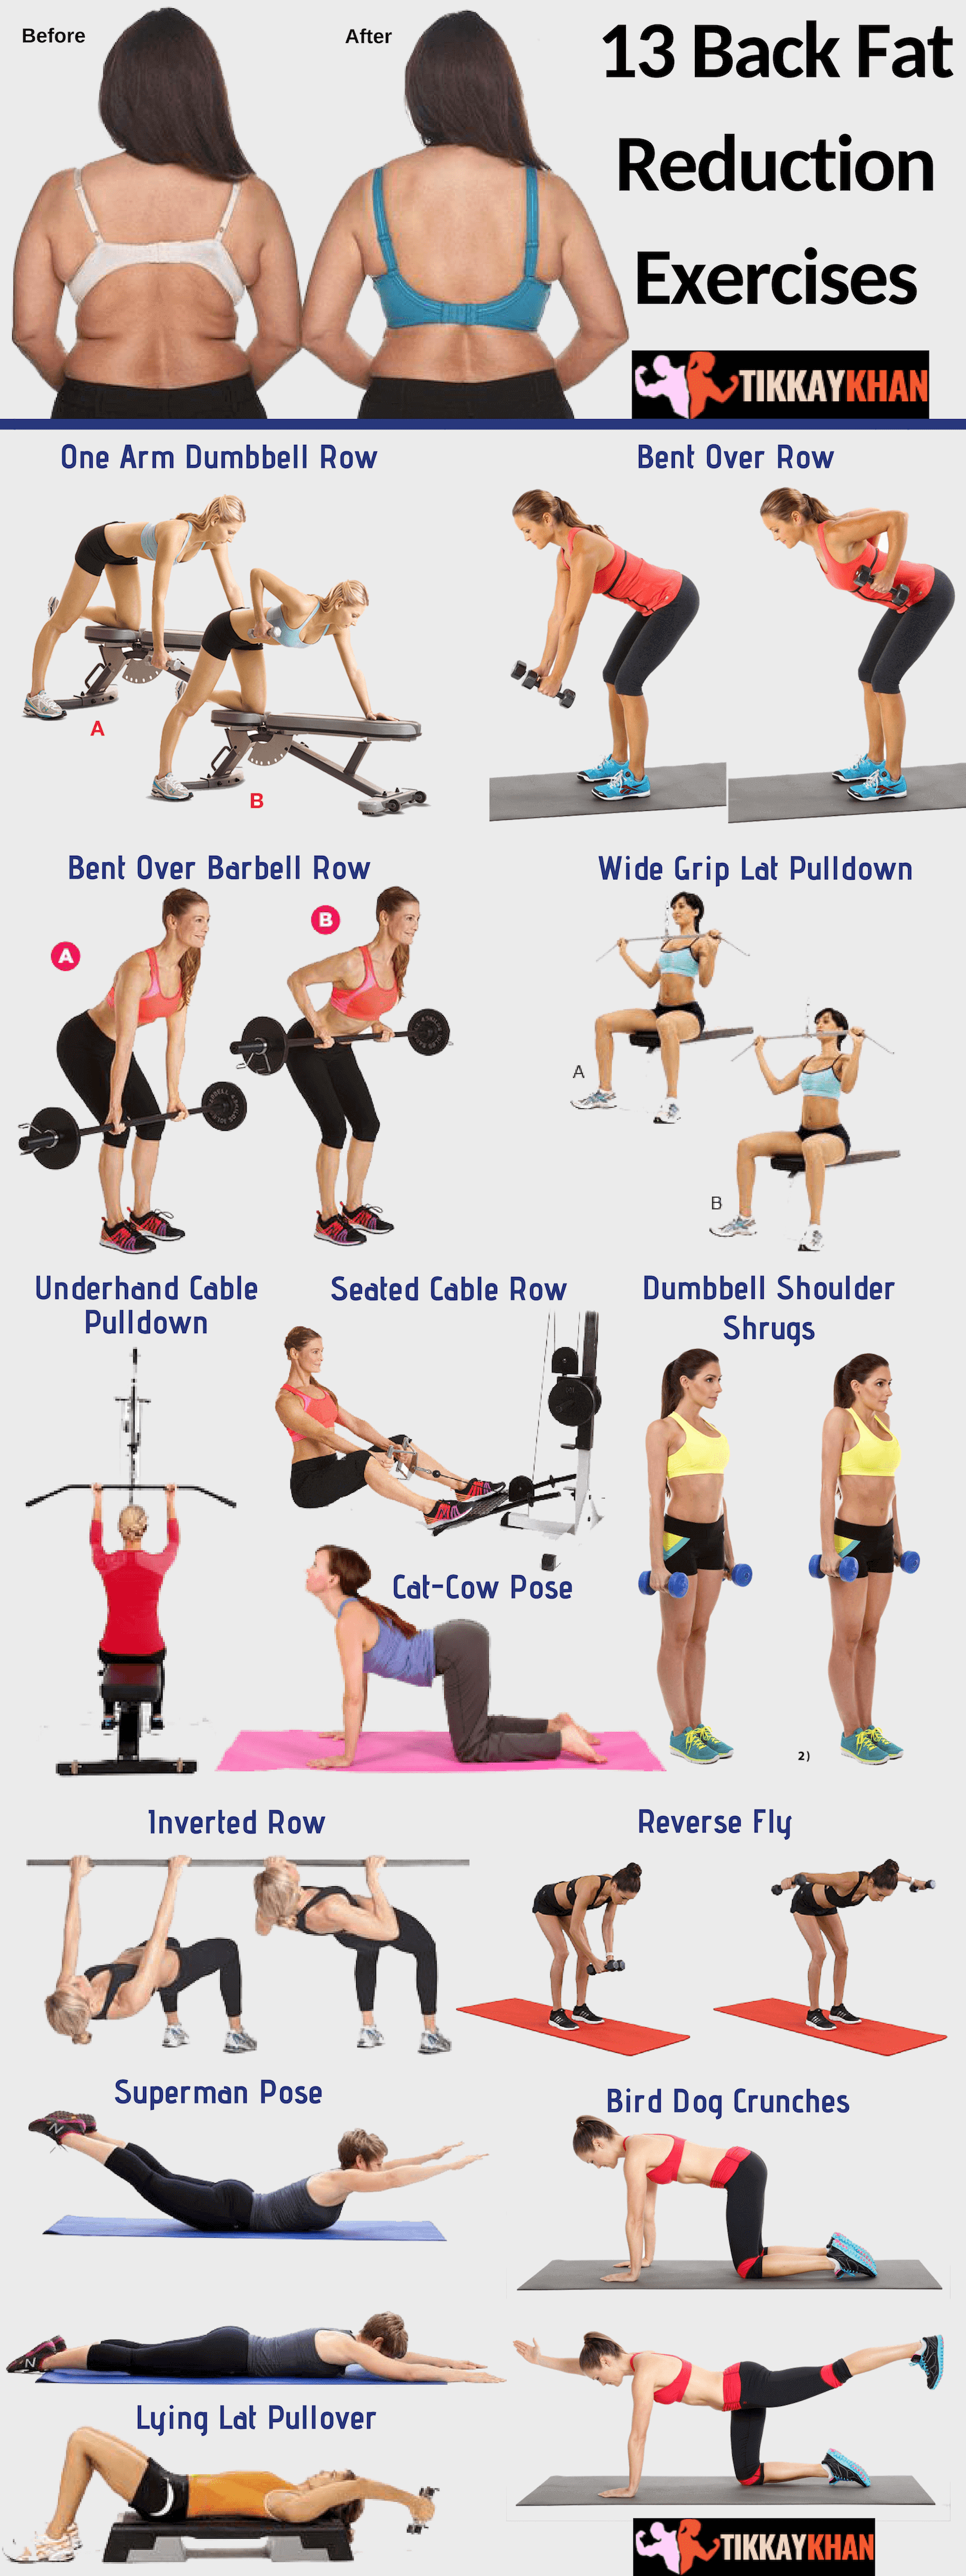 13 Back Fat Reduction Exercises Infographic